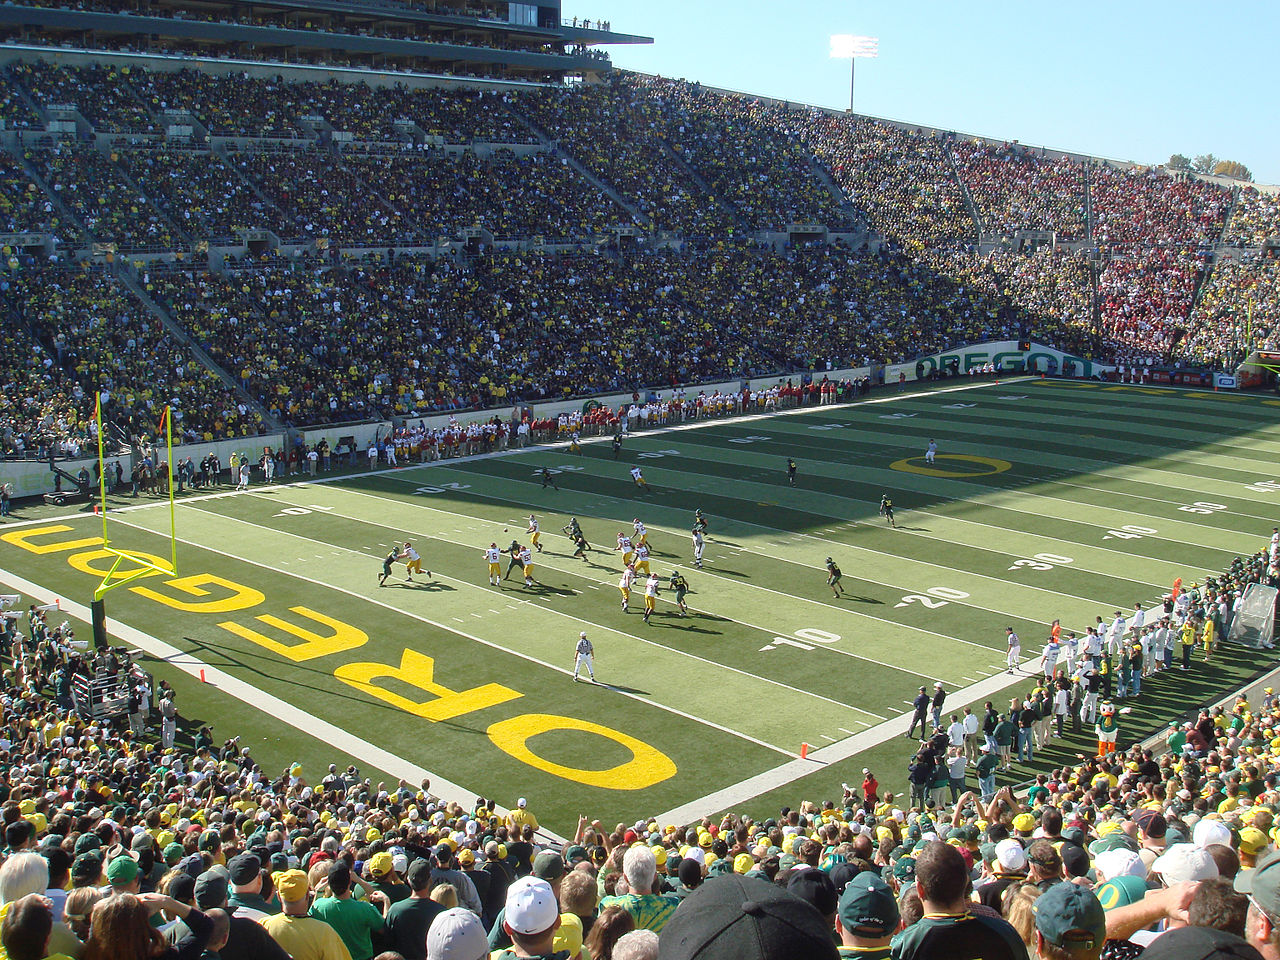 Autzen Stadium Seating Chart & Map | SeatGeek